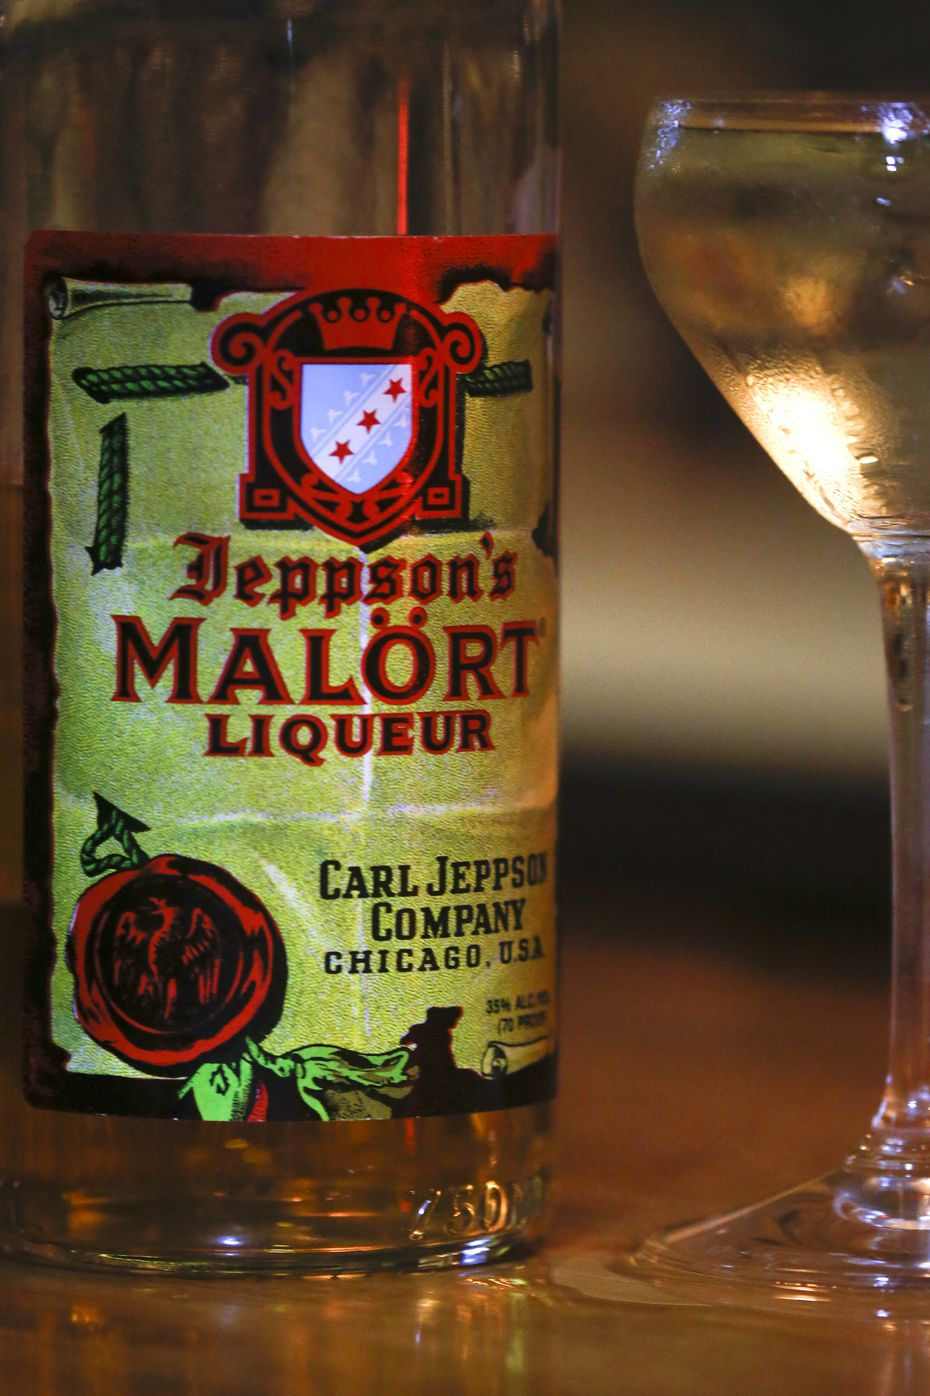 Malort, a Chicago-based, Scandinavian-style liqueur known for its off-putting taste, is seen at The Usual bar on Tuesday, Jan. 14, 2020 in Fort Worth.